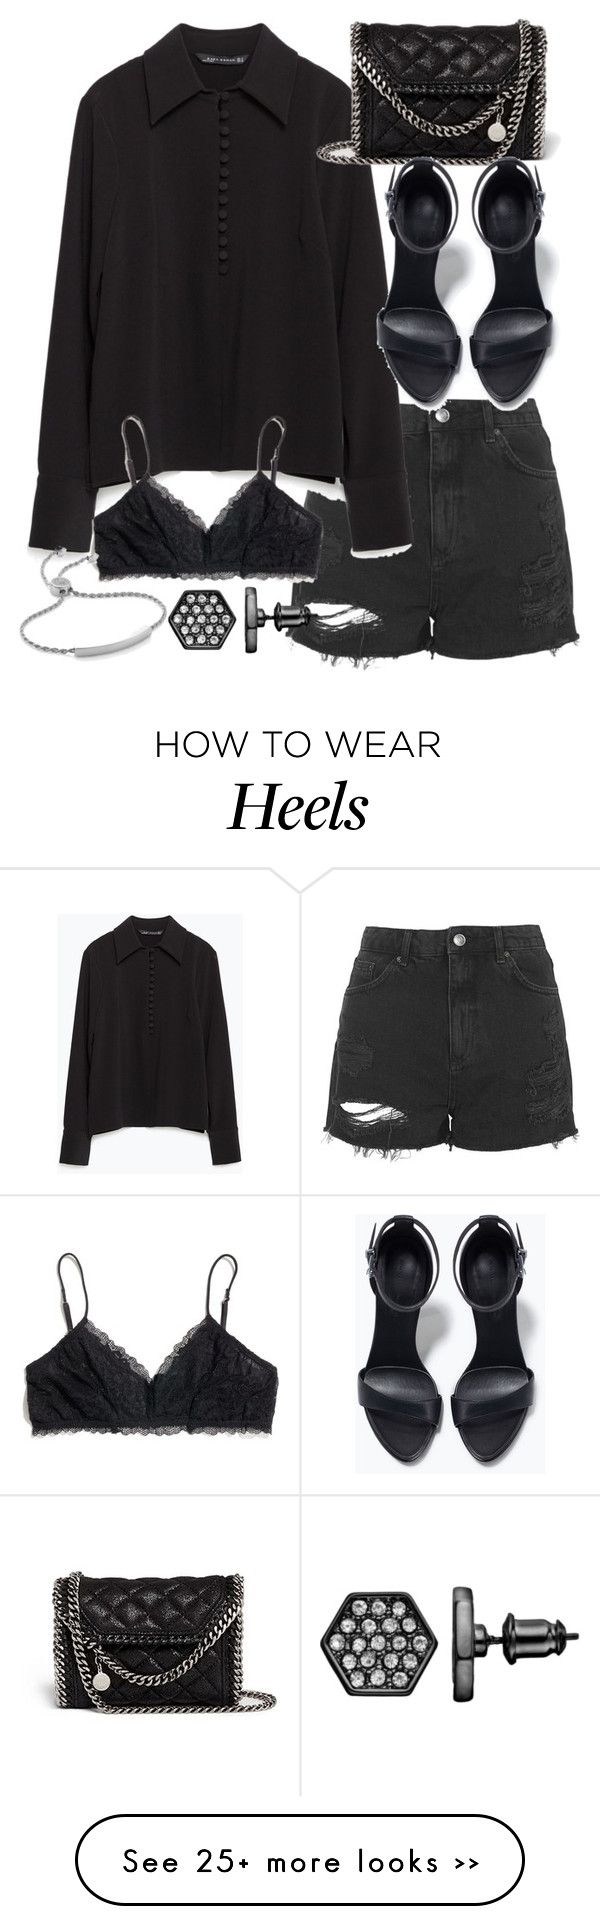 """Untitled #18877"" by florencia95 on Polyvore featuring Topshop, Zara, STELLA McCARTNEY, Madewell, Simply Vera and Monica Vinader"